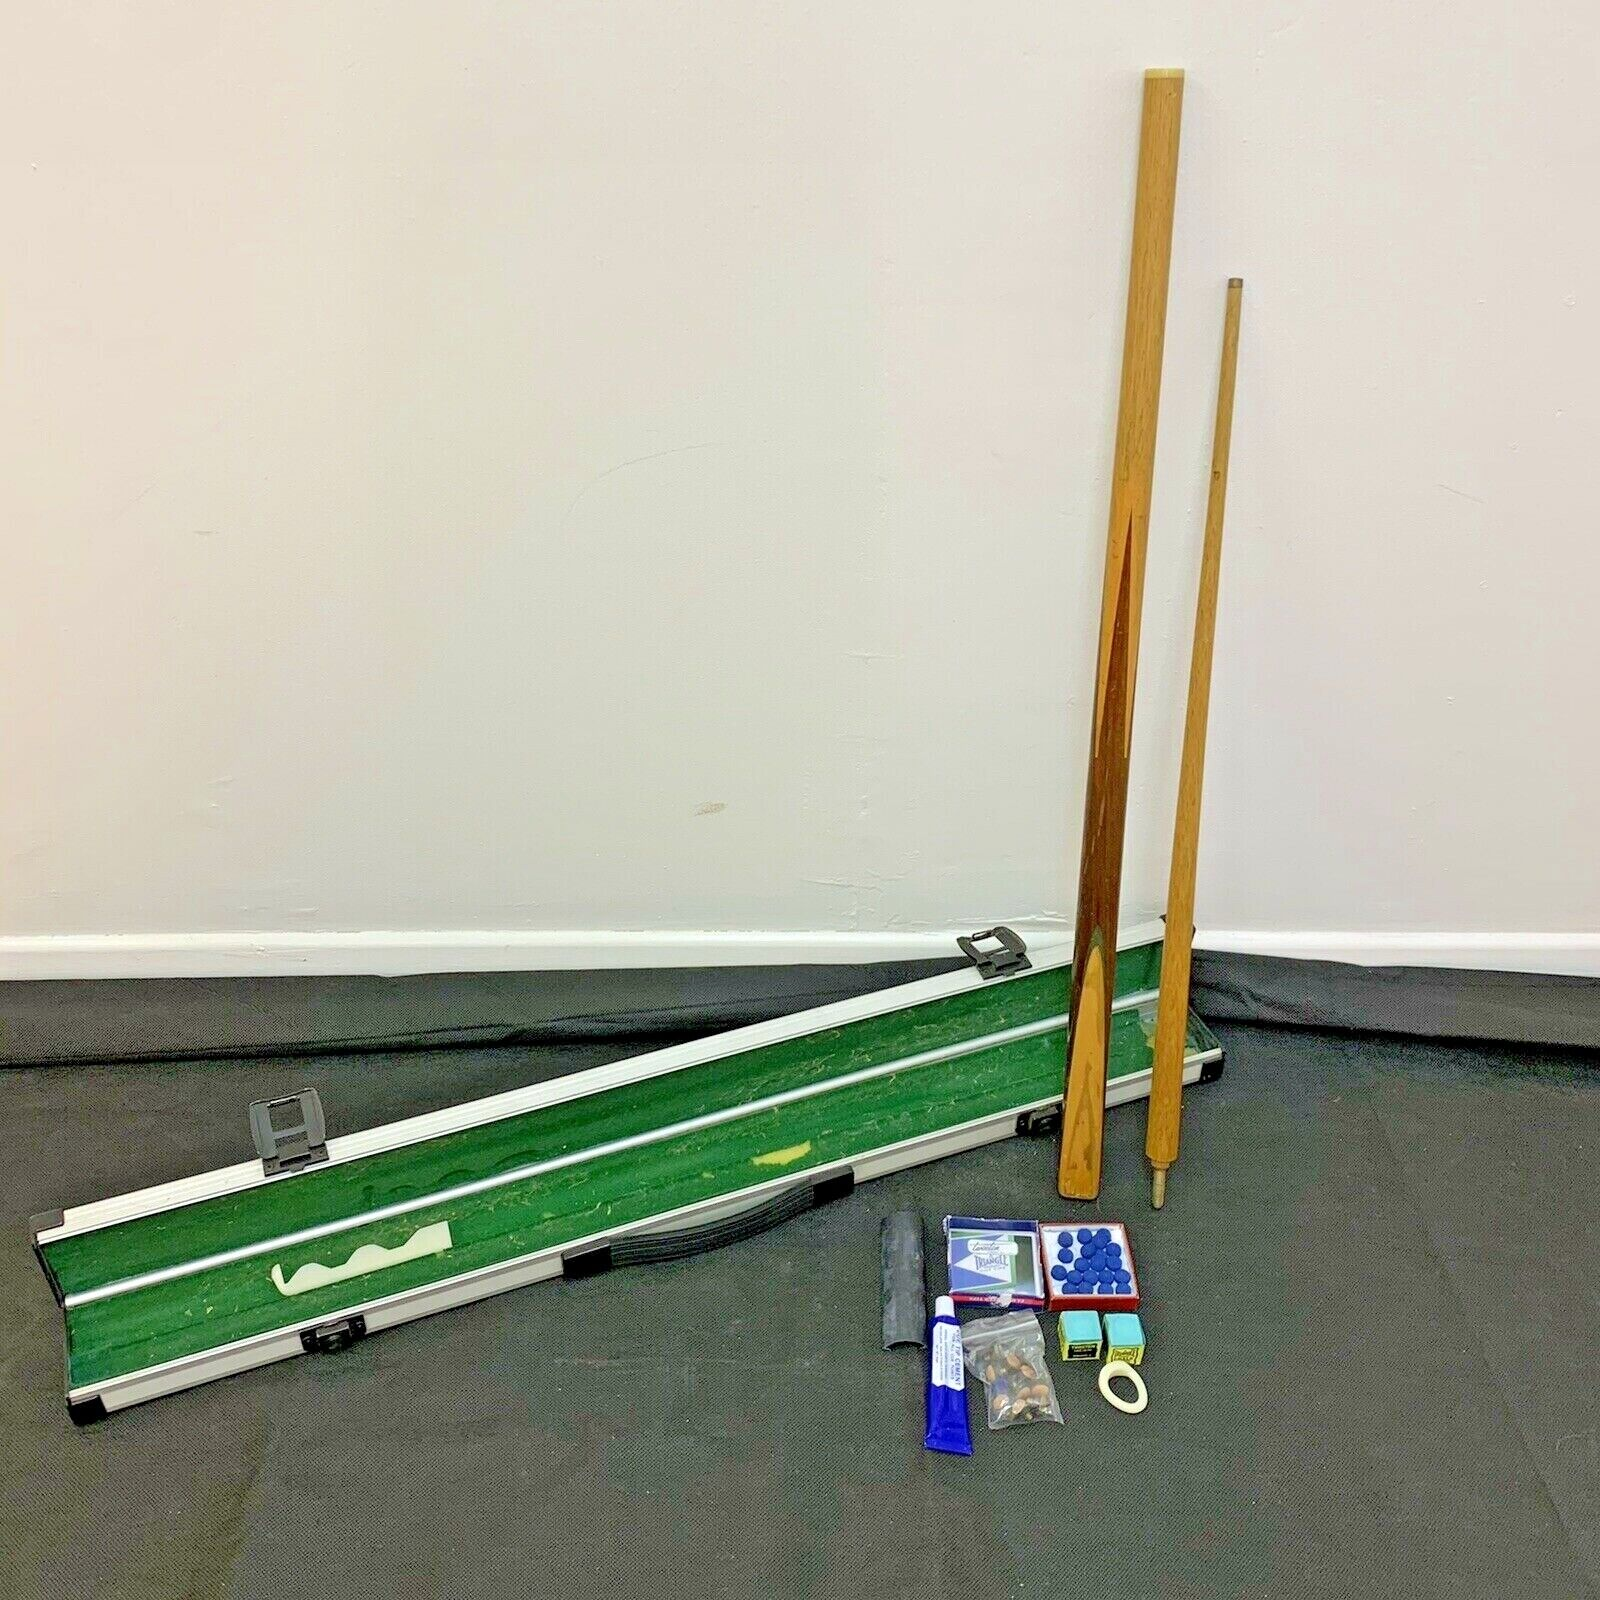 Snooker Pool Cue With 2 Chalks,Cue Tip Cement,20 Cue Tips In Secure Case